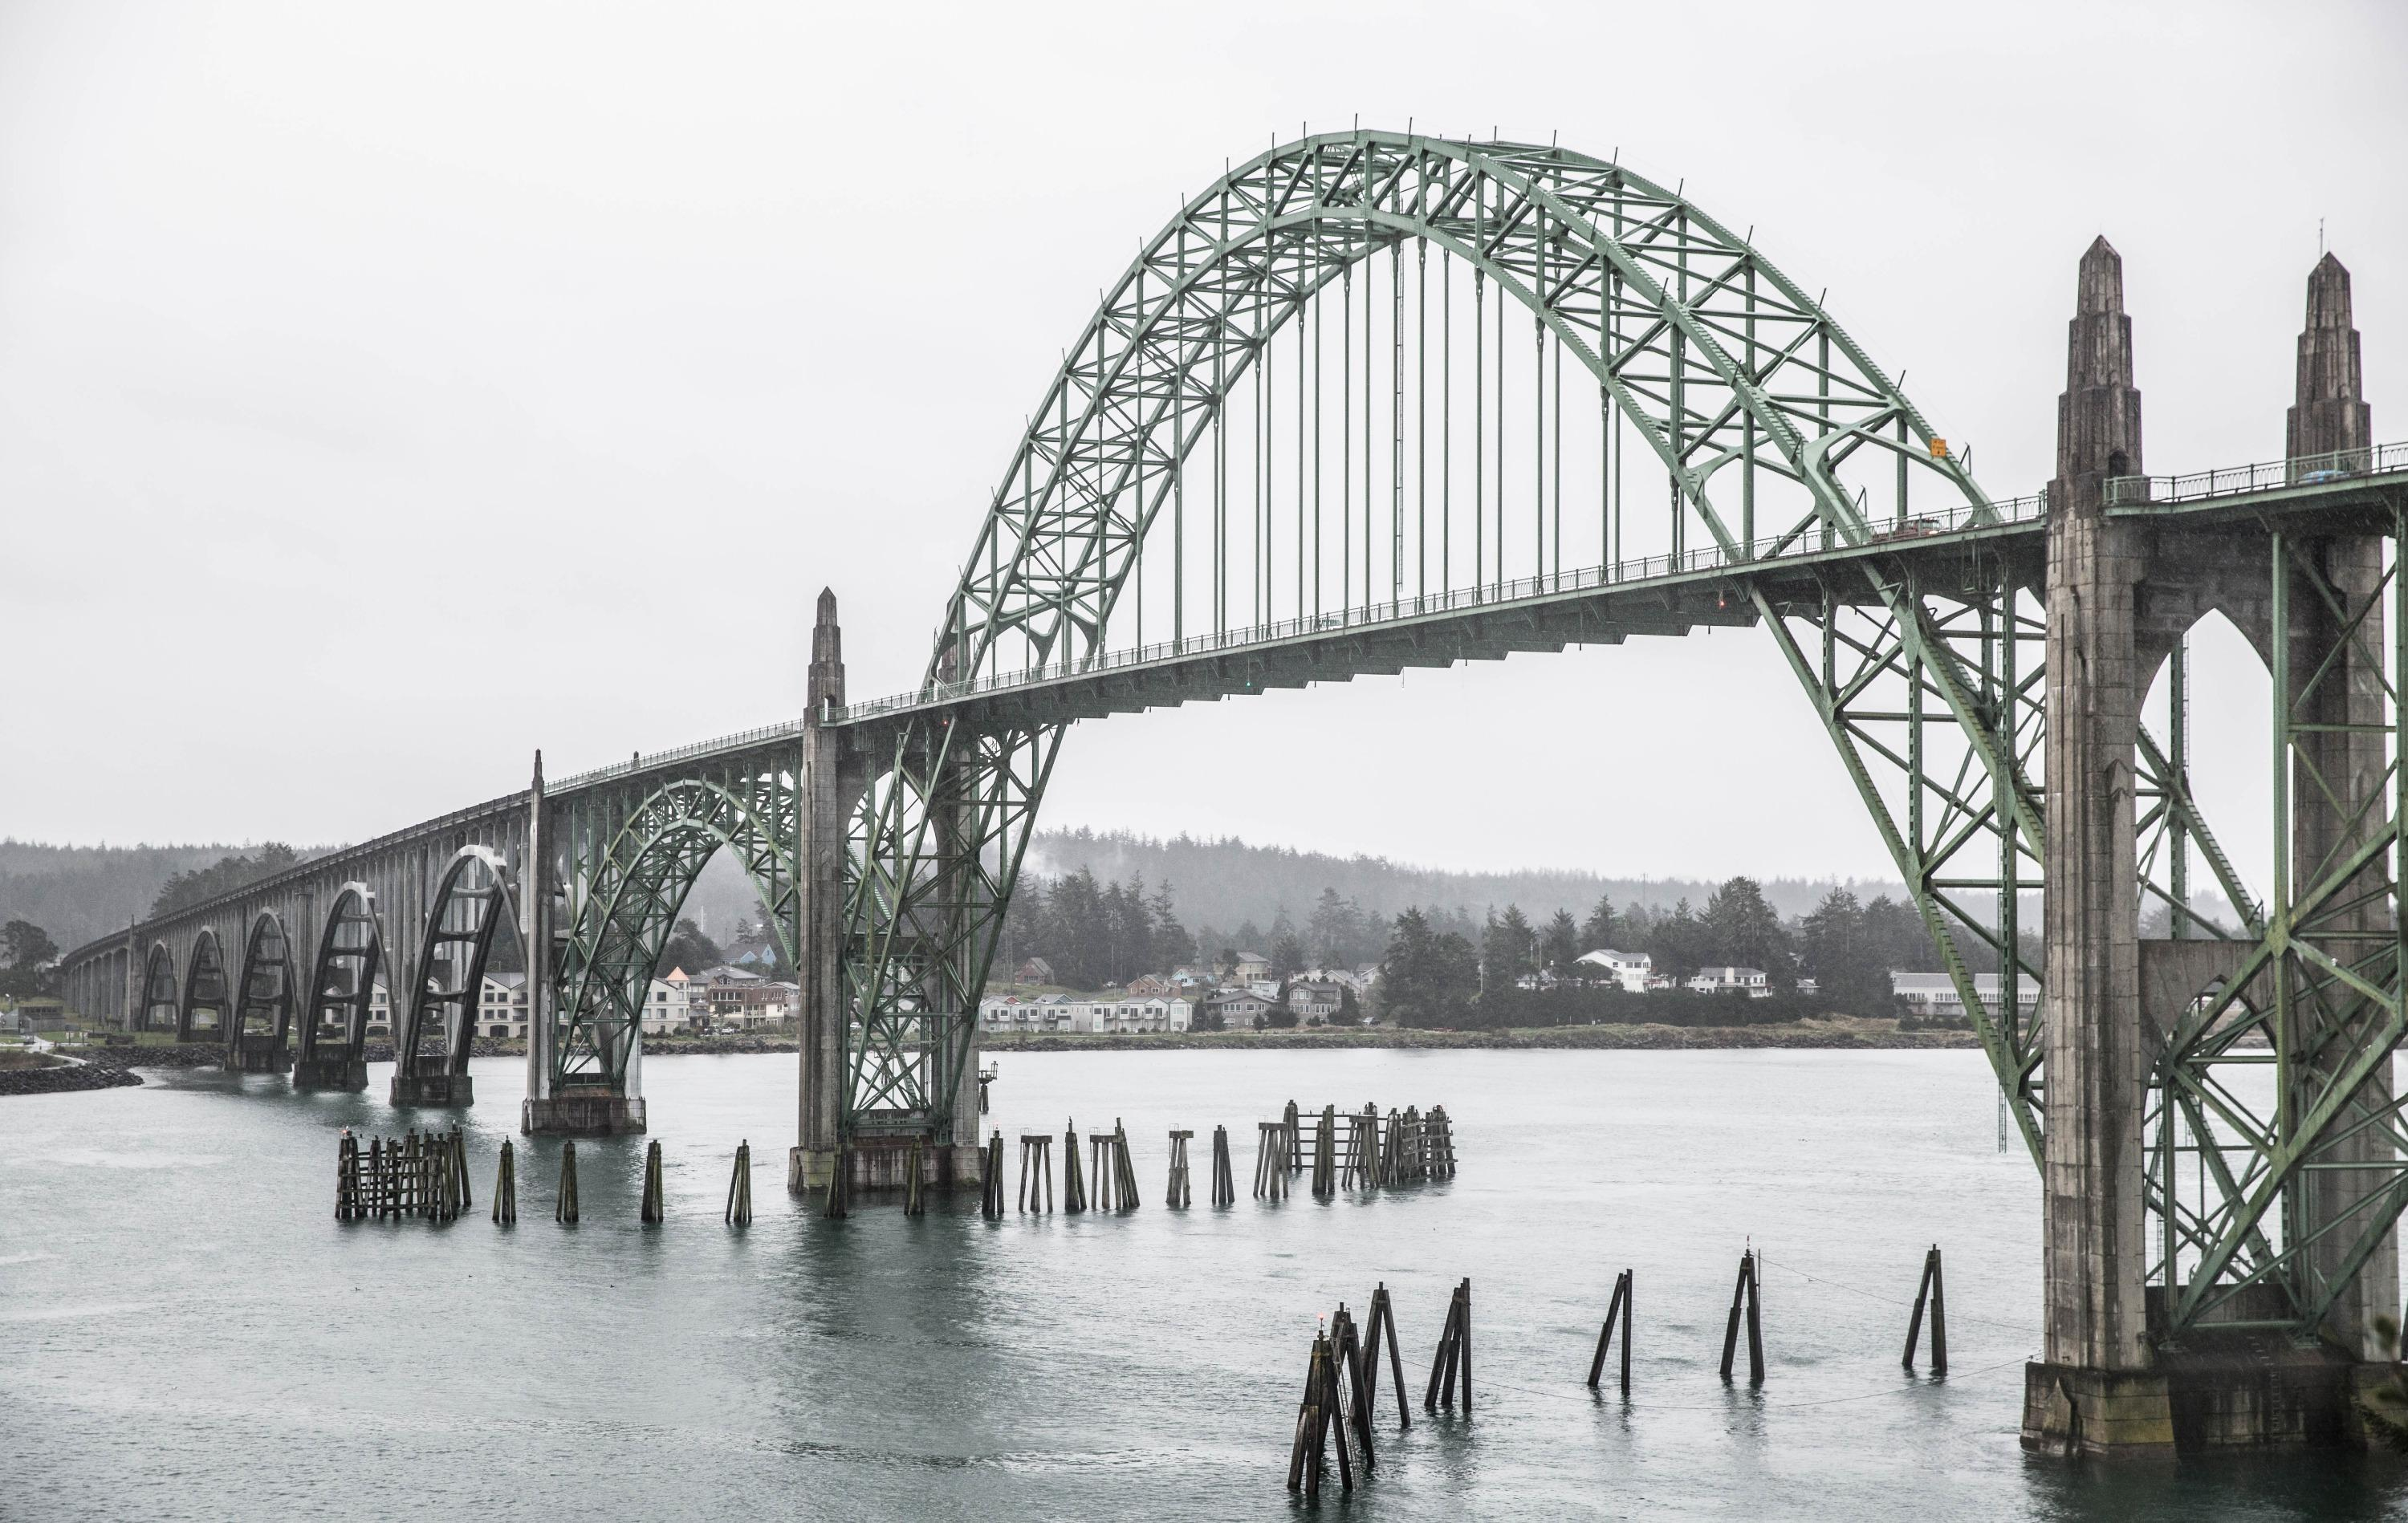 The Yaquina Bay Bridge in Newport, Oregon, was constructed in 1936.